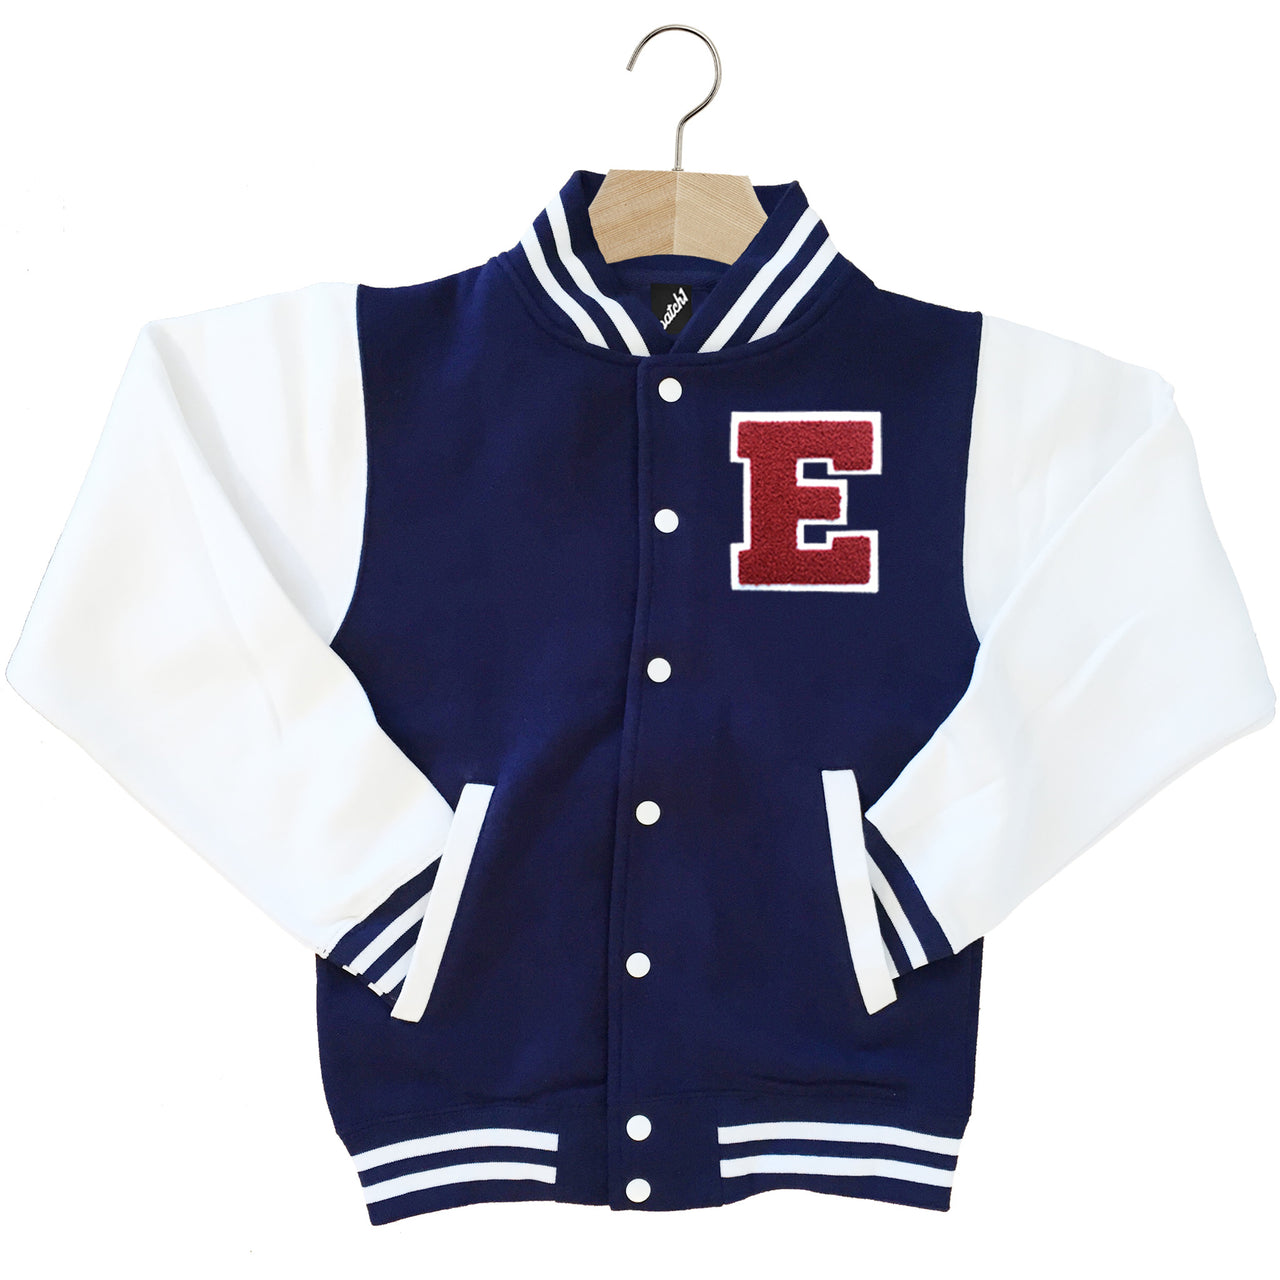 VARSITY BASEBALL JACKET UNISEX PERSONALISED WITH GENUINE US COLLEGE LETTER E